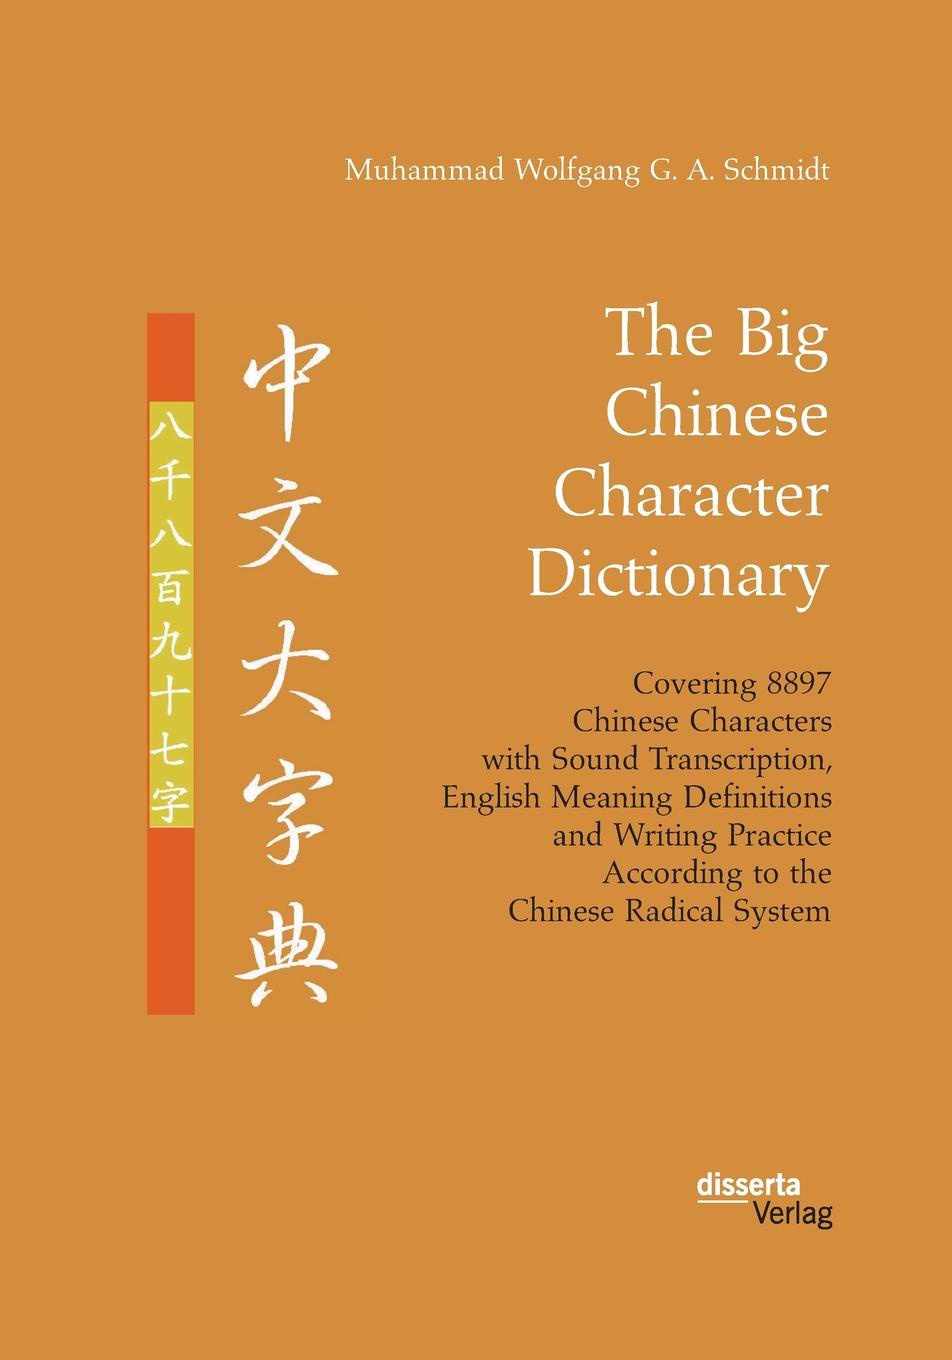 Muhammad Wolfgang G. A. Schmidt The Big Chinese Character Dictionary. Covering 8897 Chinese Characters with Sound Transcription, English Meaning Definitions and Writing Practice According to the Chinese Radical System zhou yi the book of change the chinese culture book in chinese edition